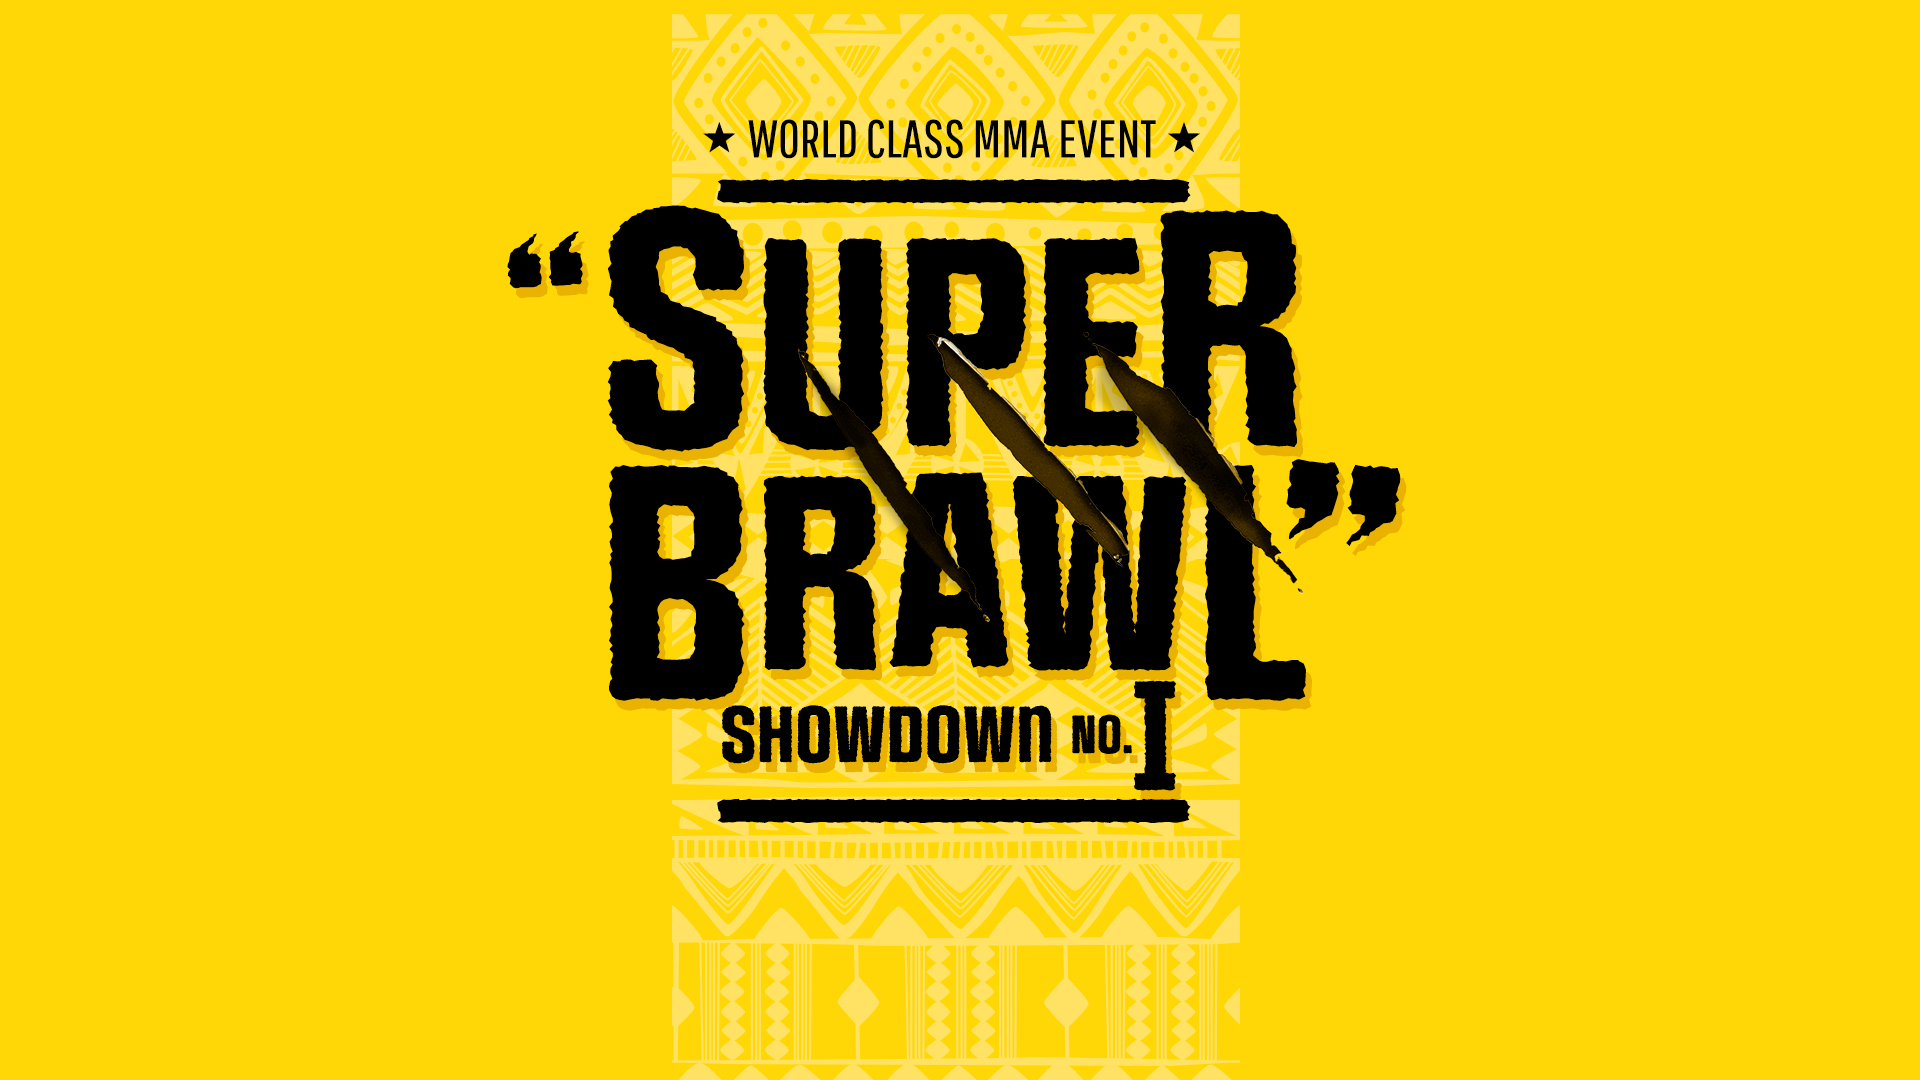 Super Brawl Showdown I